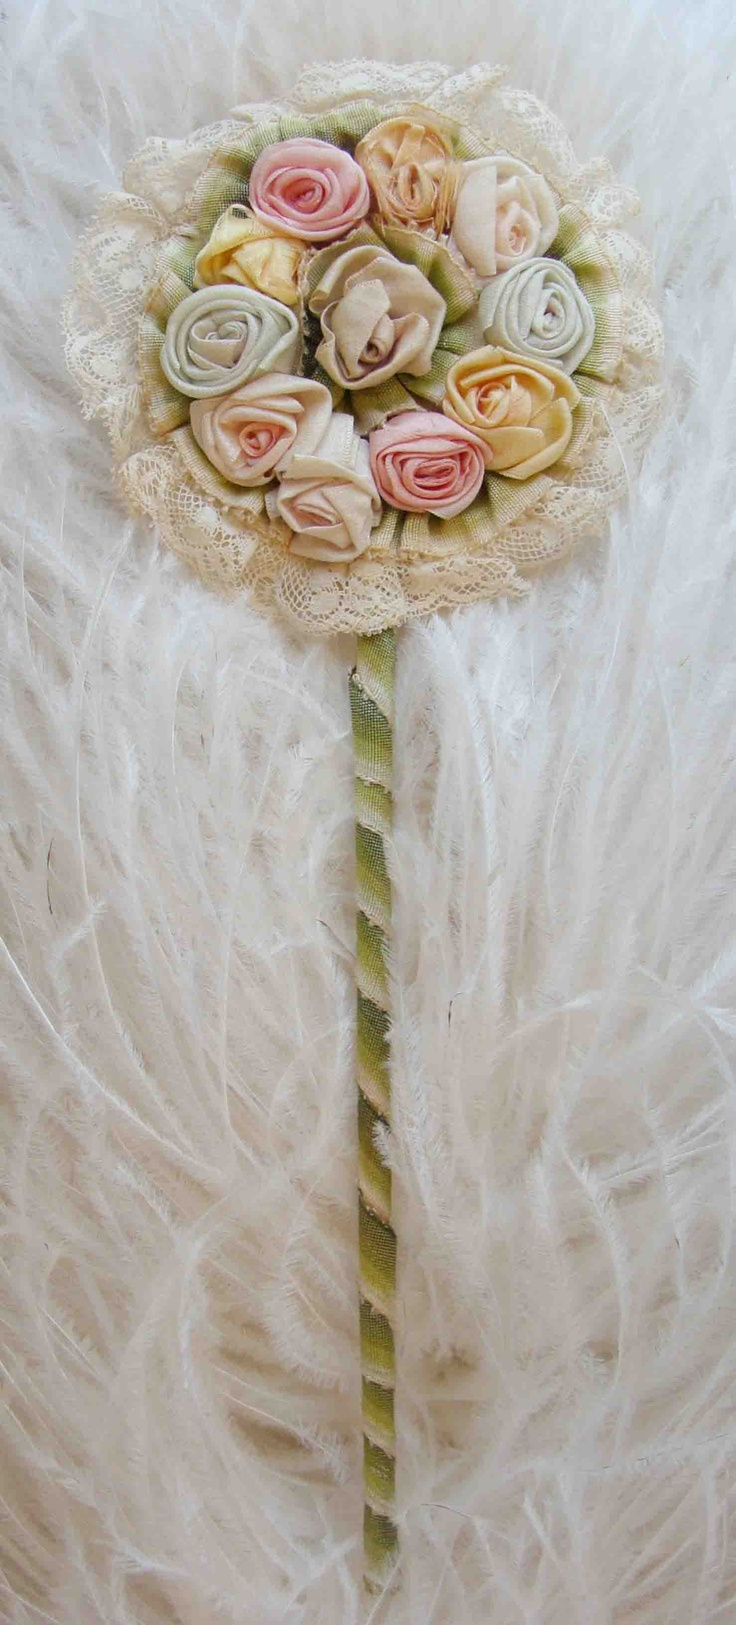 Circa 1920s Lovely Powder Puff Wand Adorned With Silk Ribbonwork Rosettes Lace and Ombre Ribbon